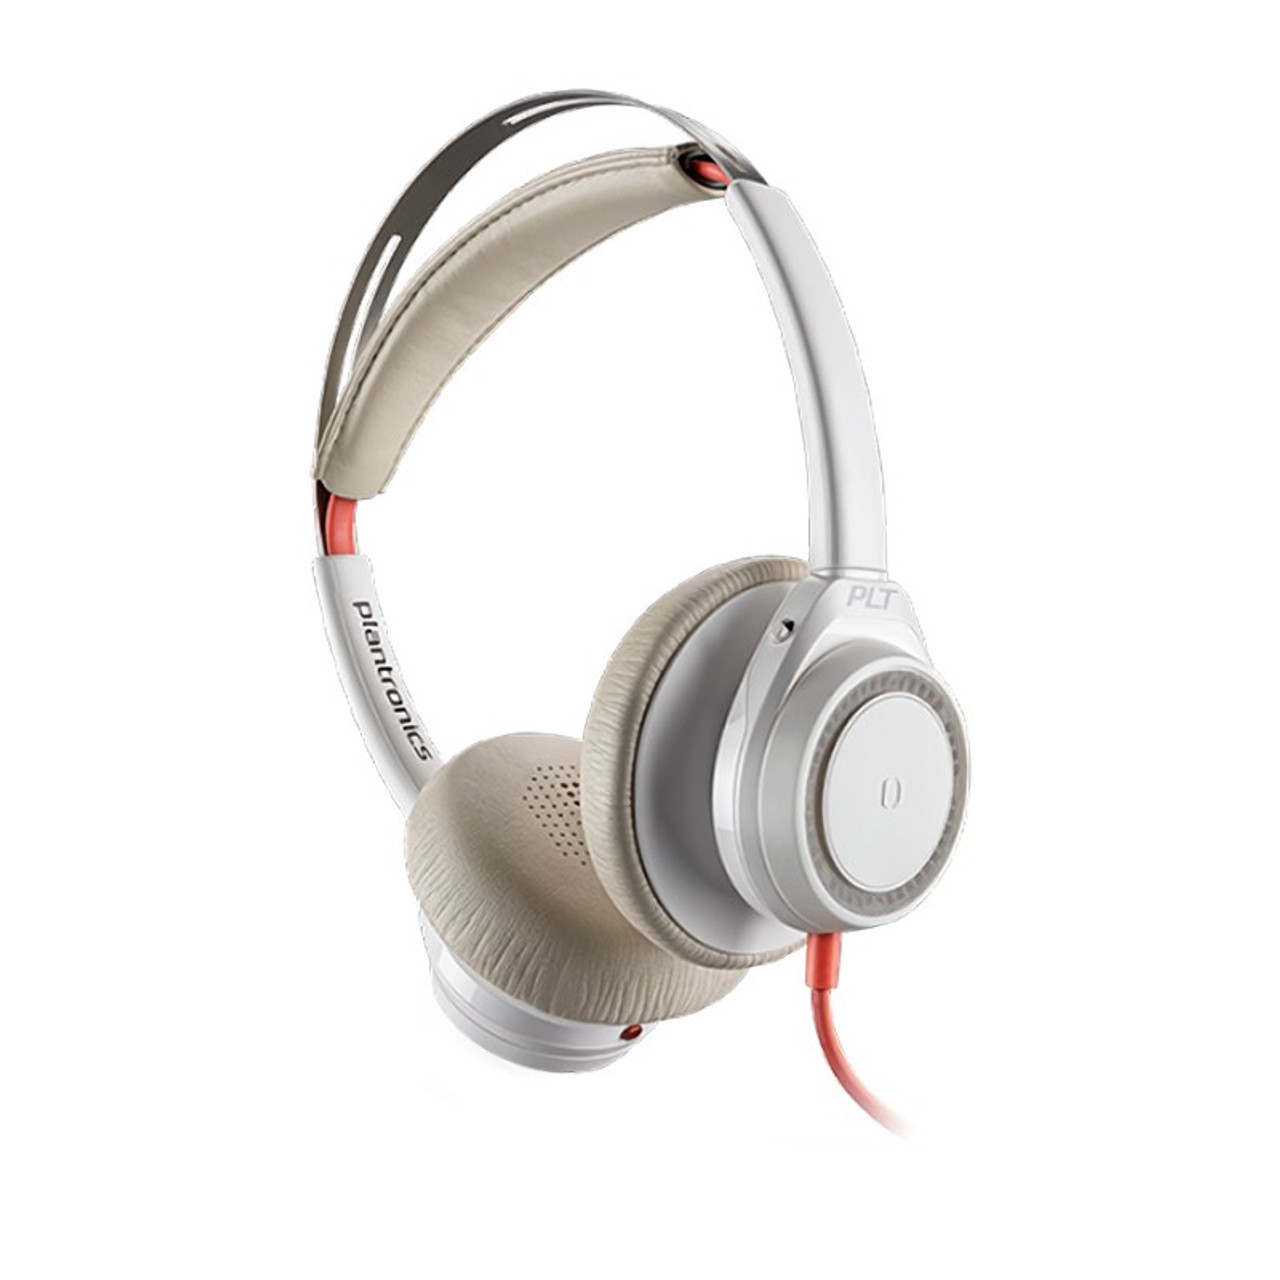 Image for Plantronics Blackwire 7225 Noise Cancelling USB Stereo Headset - White CX Computer Superstore